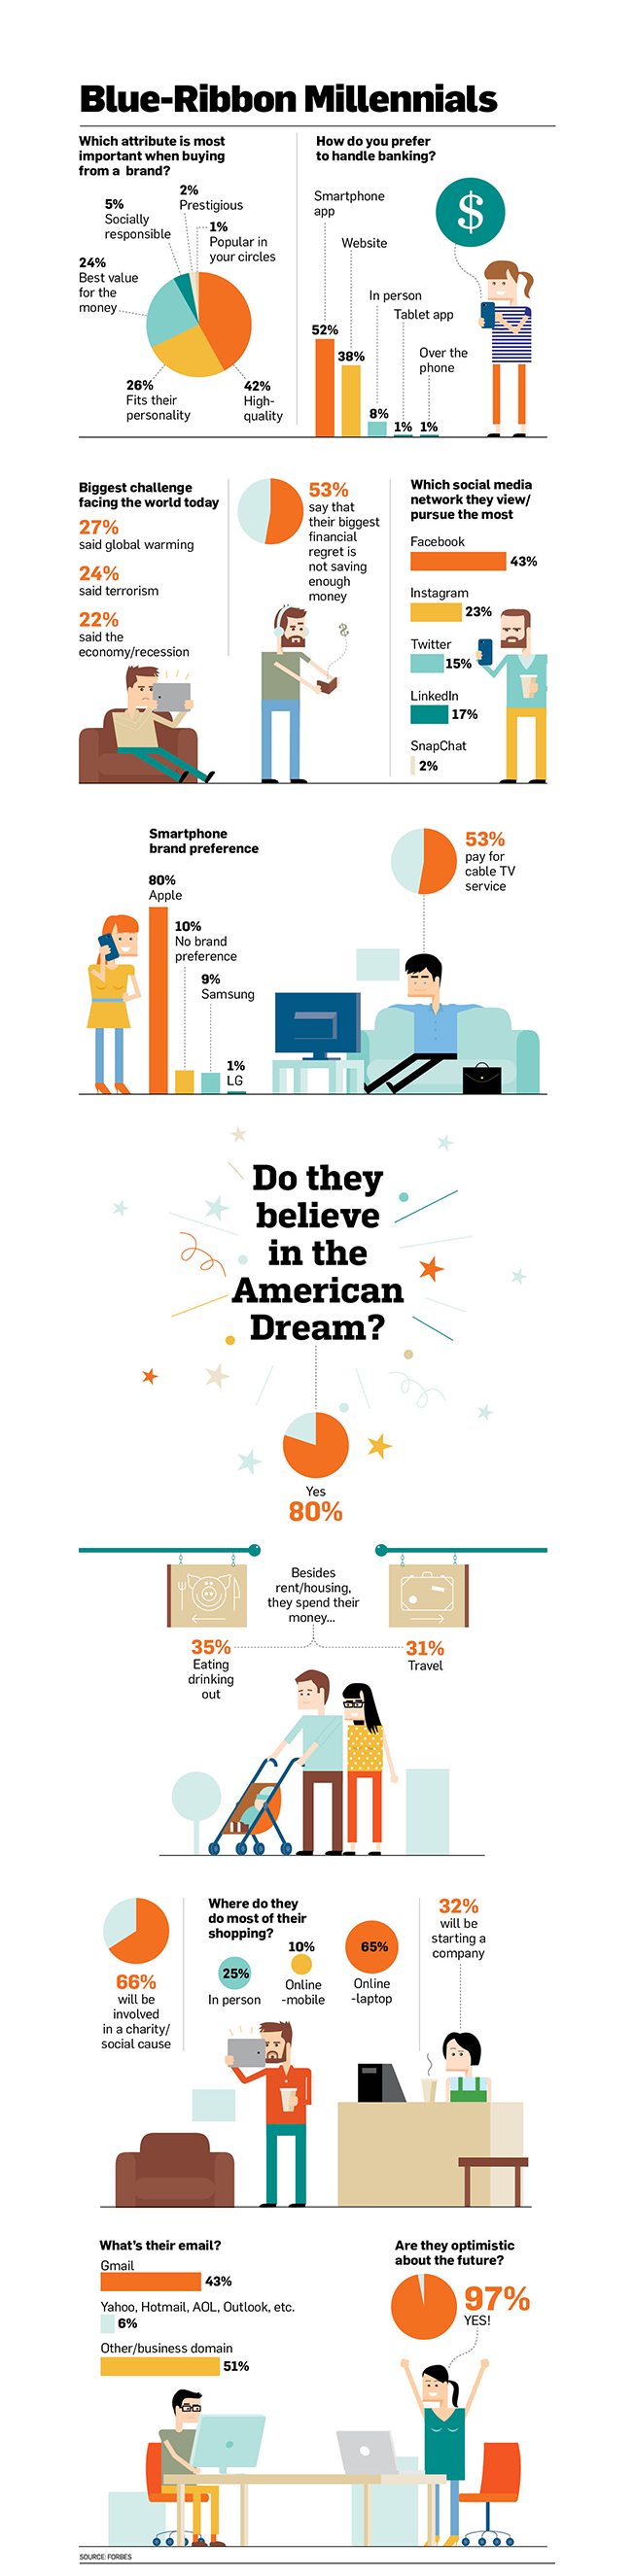 blue-ribbon-millennial-infographic-copy